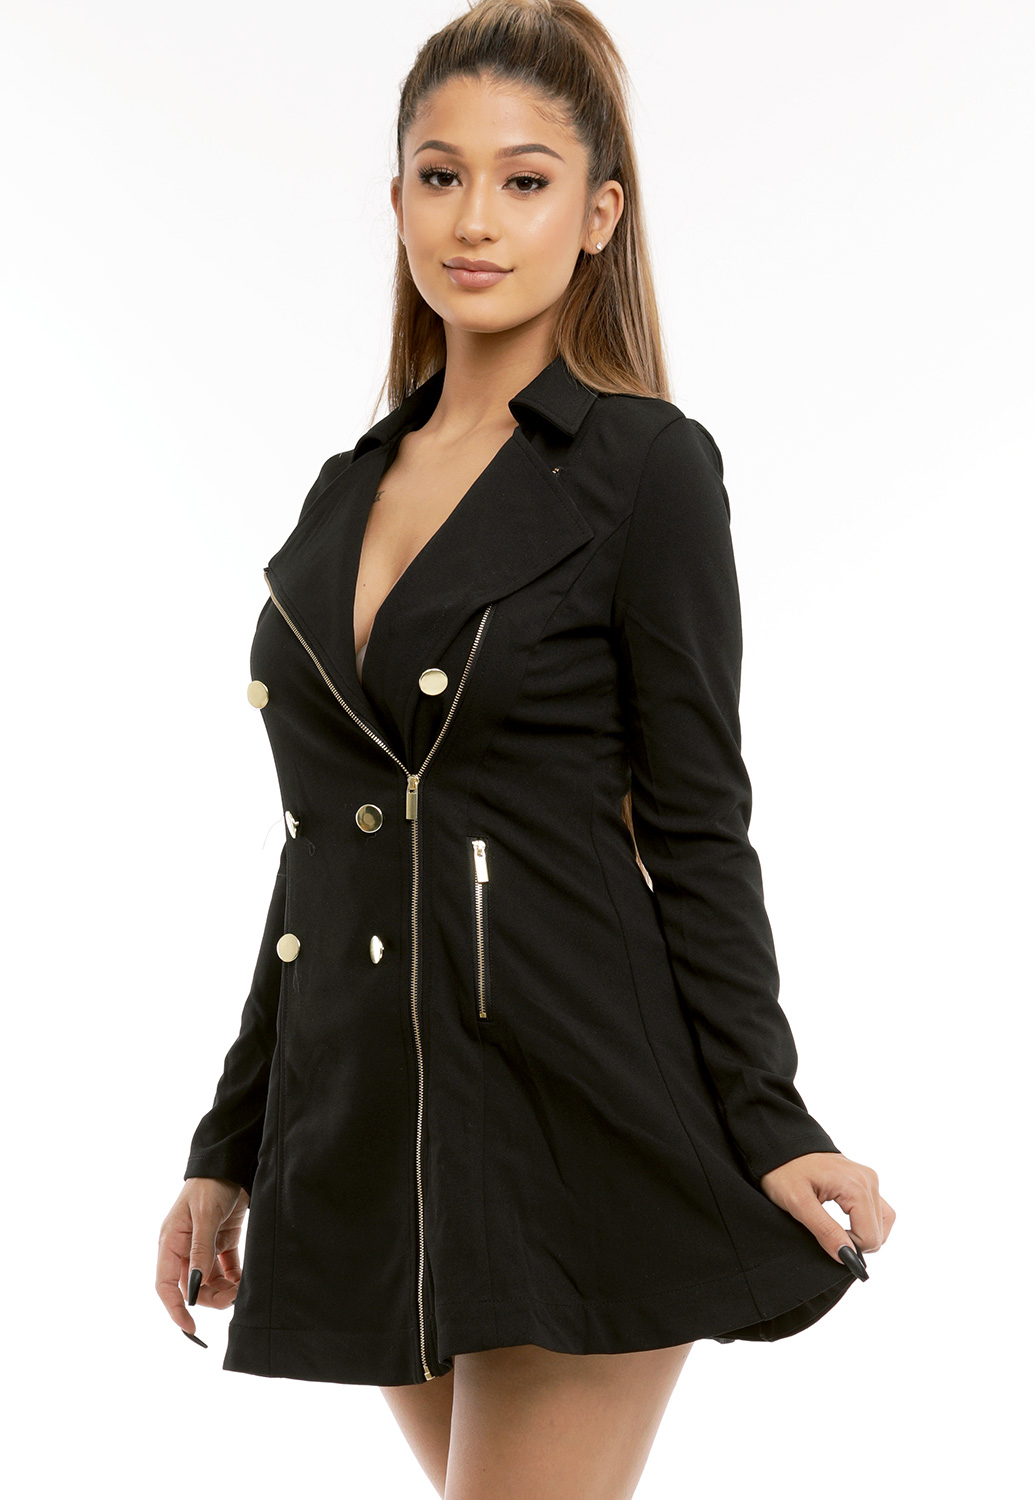 Zip Up Dressy Jacket